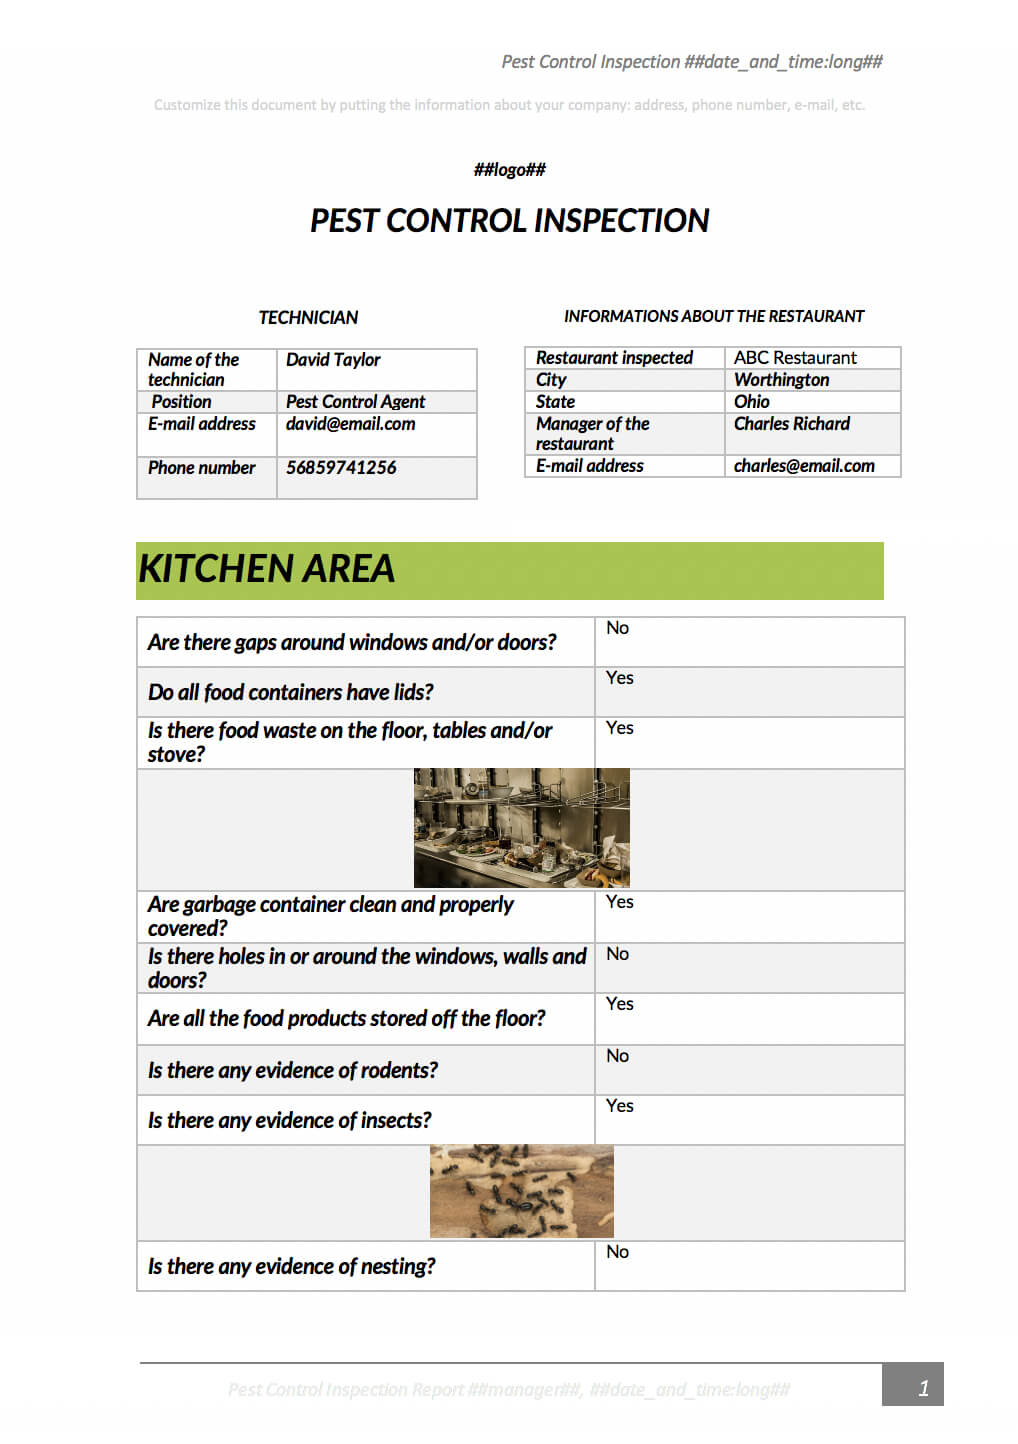 Pest Control Inspection With Kizeo Forms From Your Cellphone Throughout Pest Control Report Template